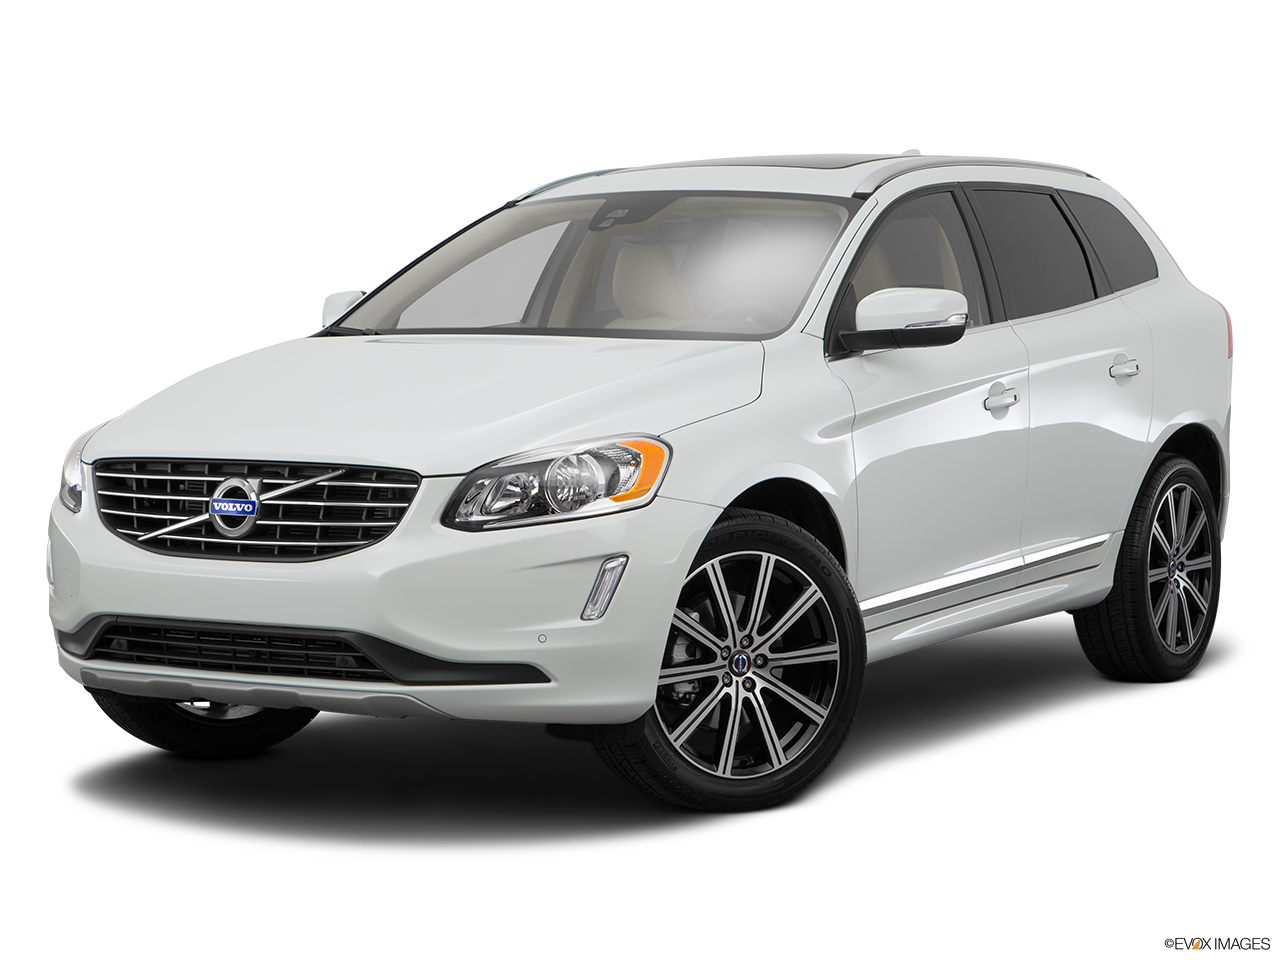 Test Drive A 2016 Volvo XC60 at Galpin Volvo in Los Angeles